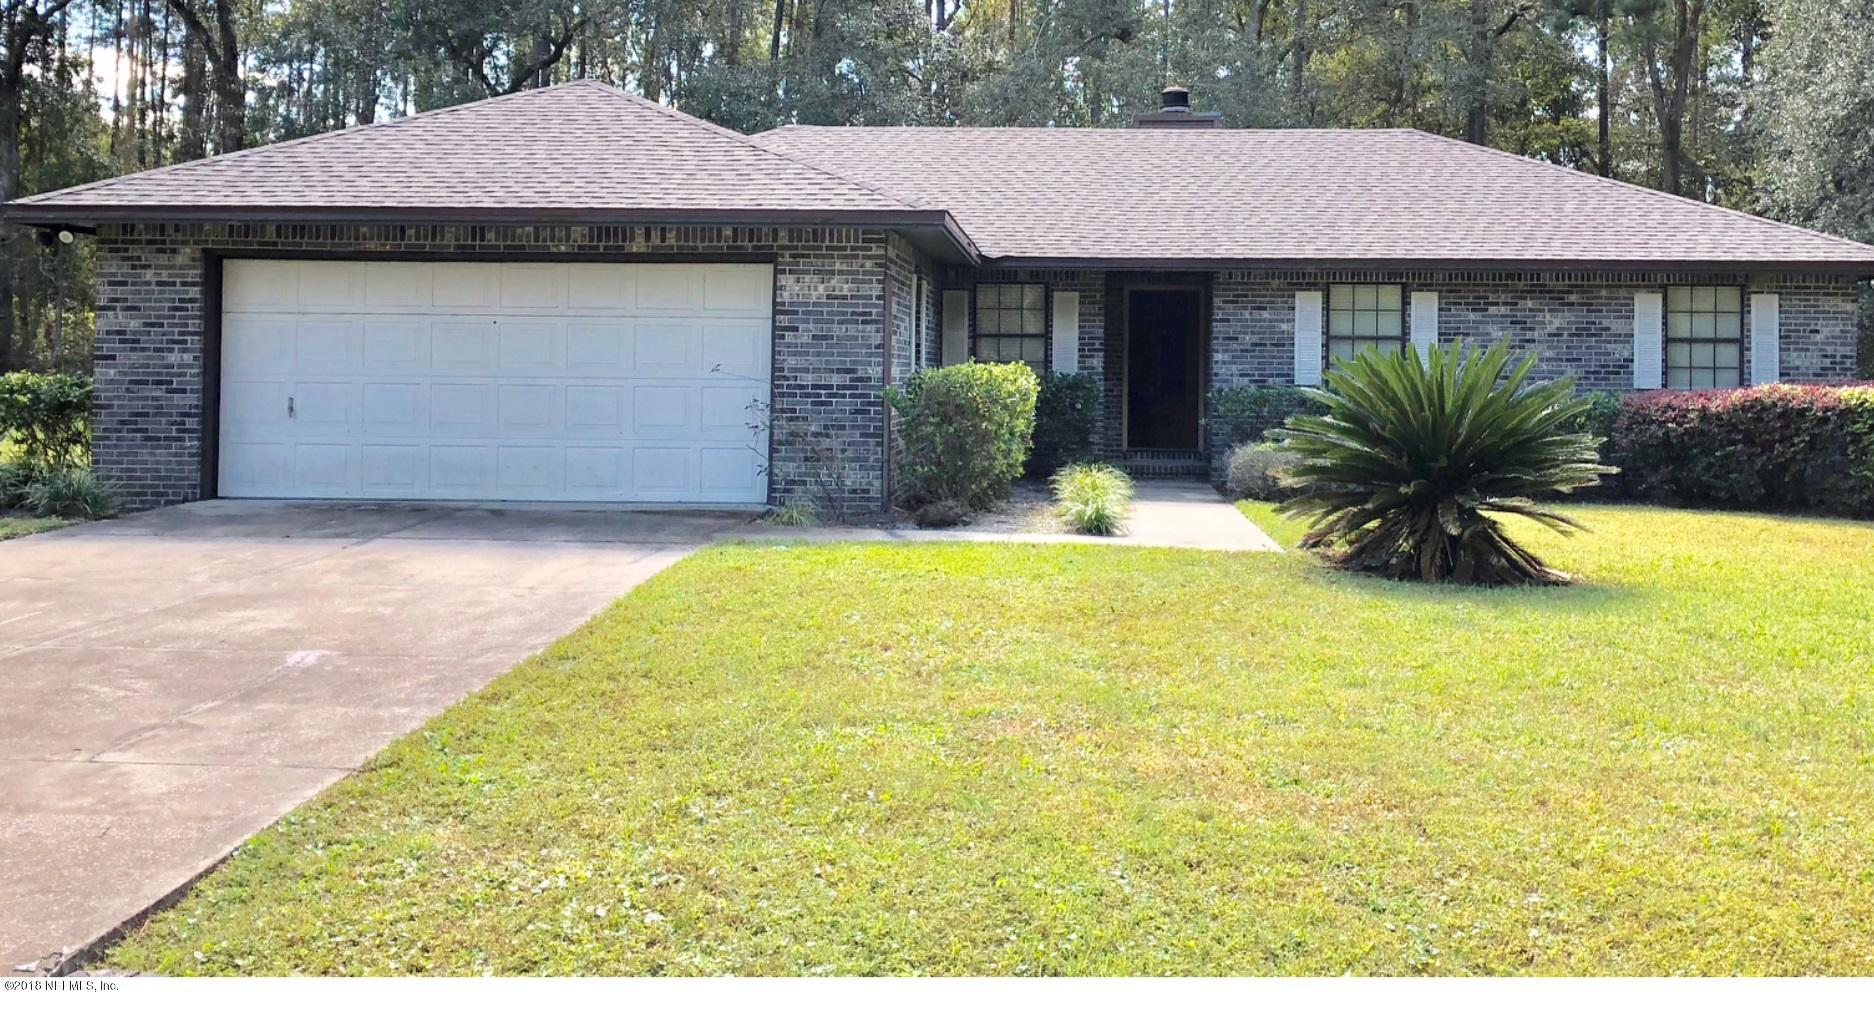 55081 WHITE OAKS, CALLAHAN, FLORIDA 32011, 3 Bedrooms Bedrooms, ,2 BathroomsBathrooms,Residential - single family,For sale,WHITE OAKS,965096